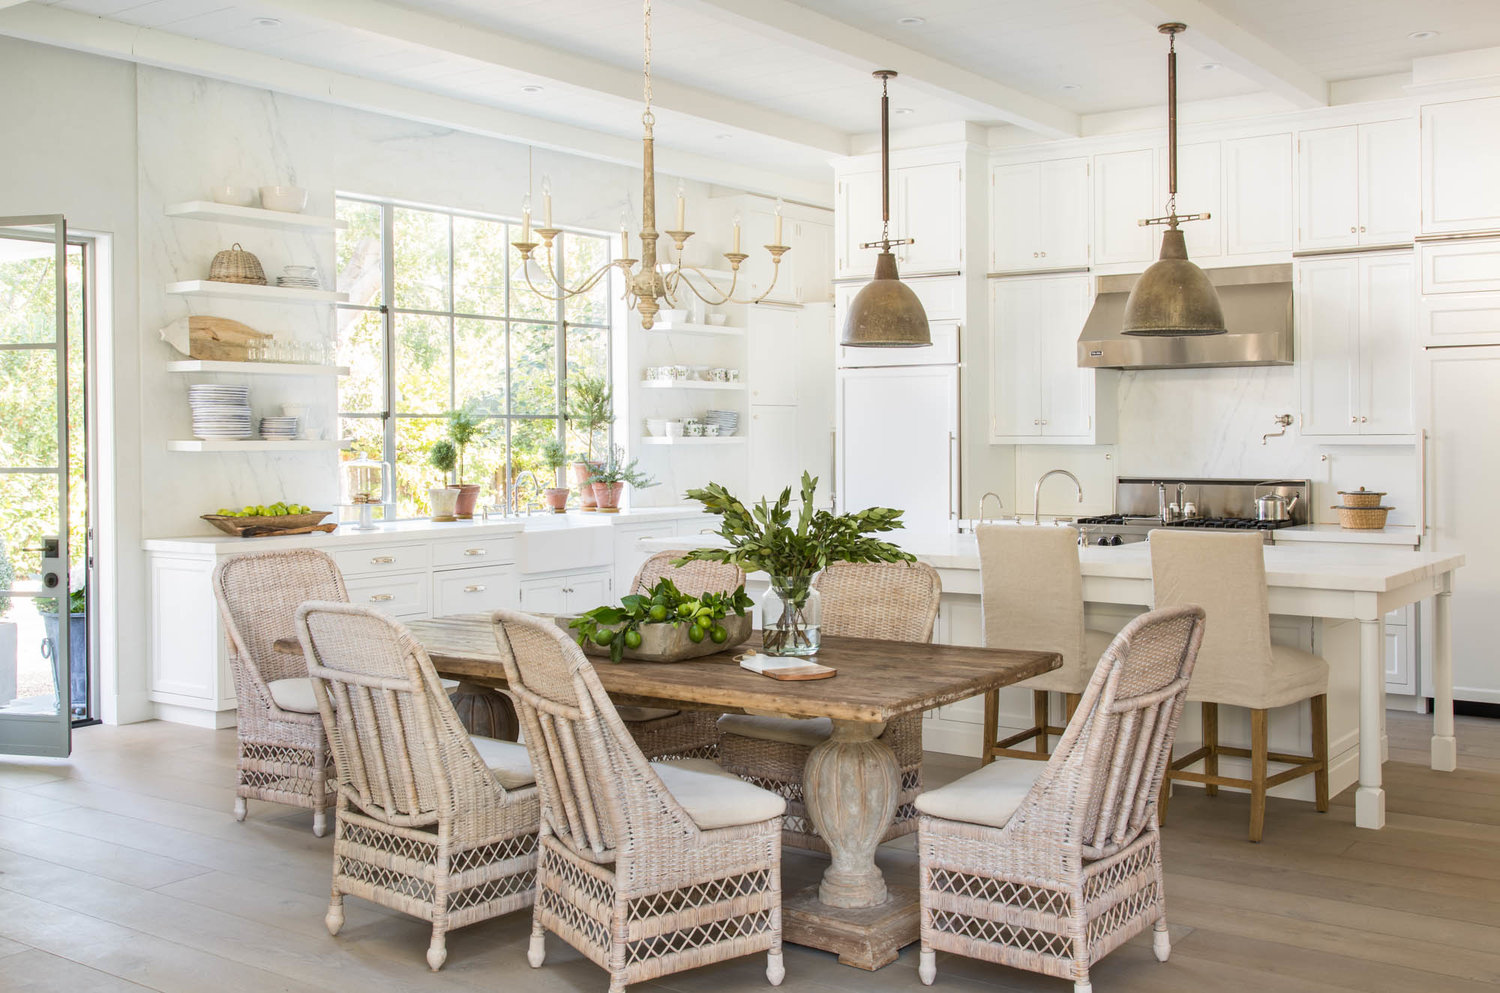 A Californian Home Decorated in Elegant Neutrals